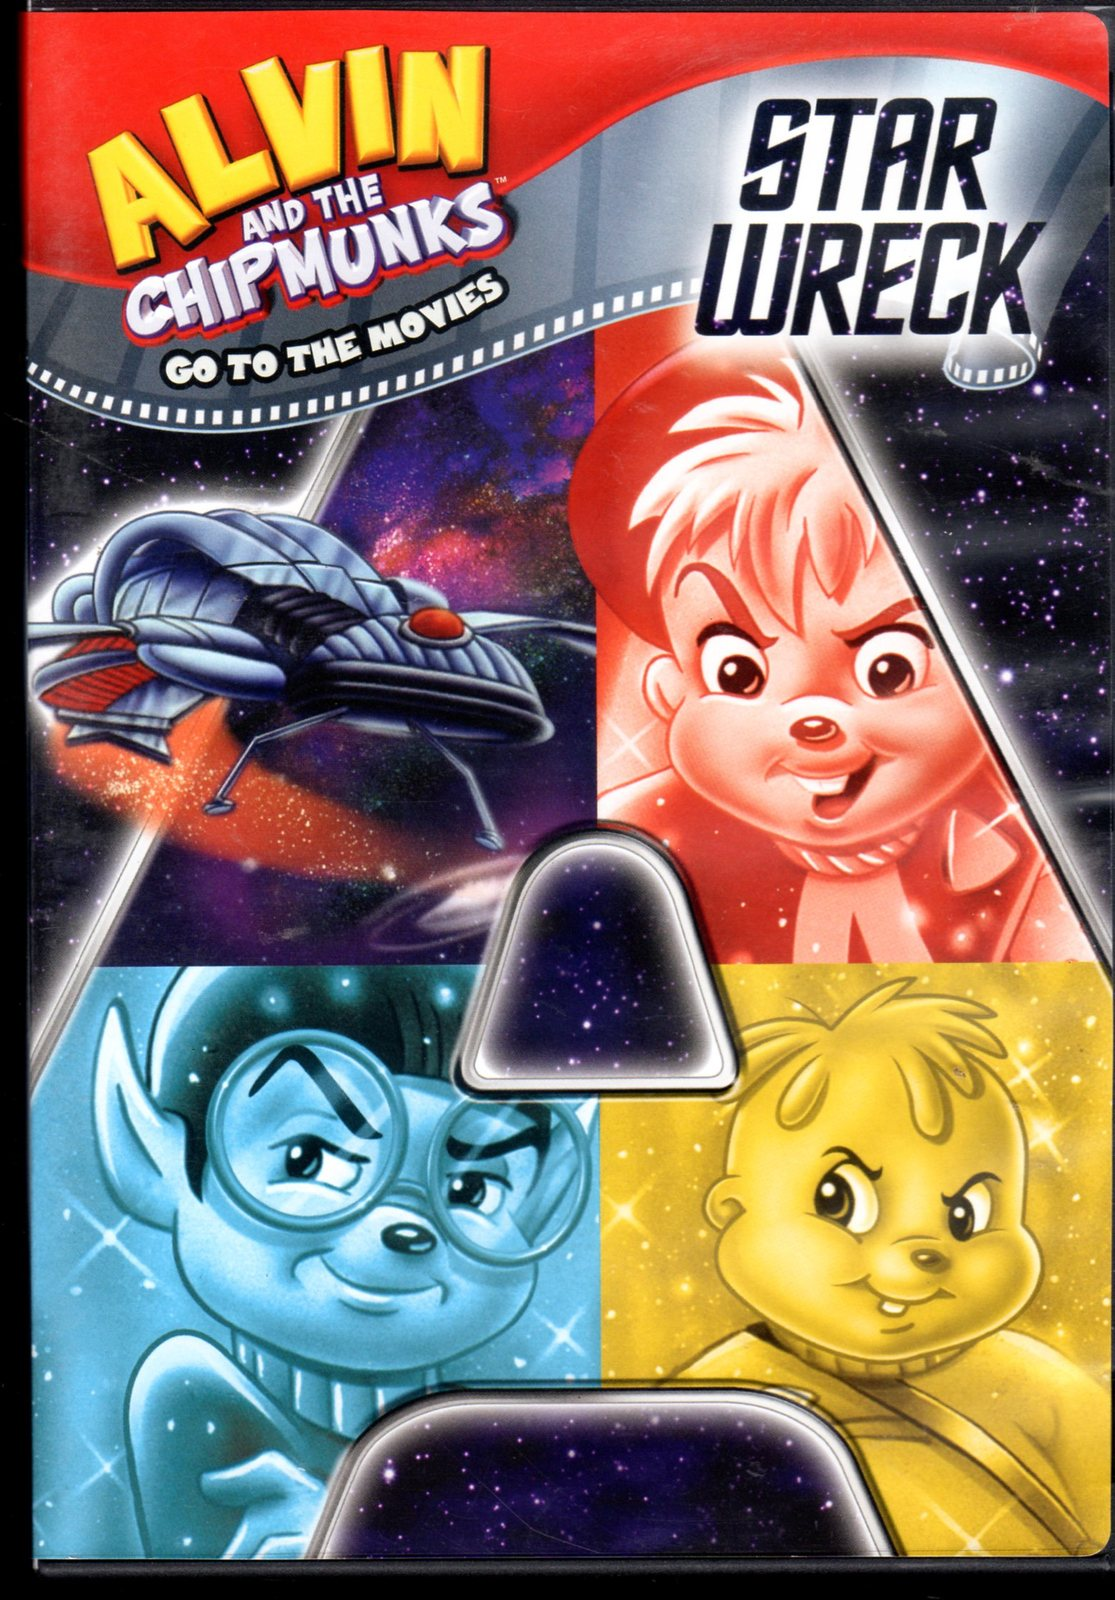 Alvin And The ChipMunks Star Wreck (DVD)